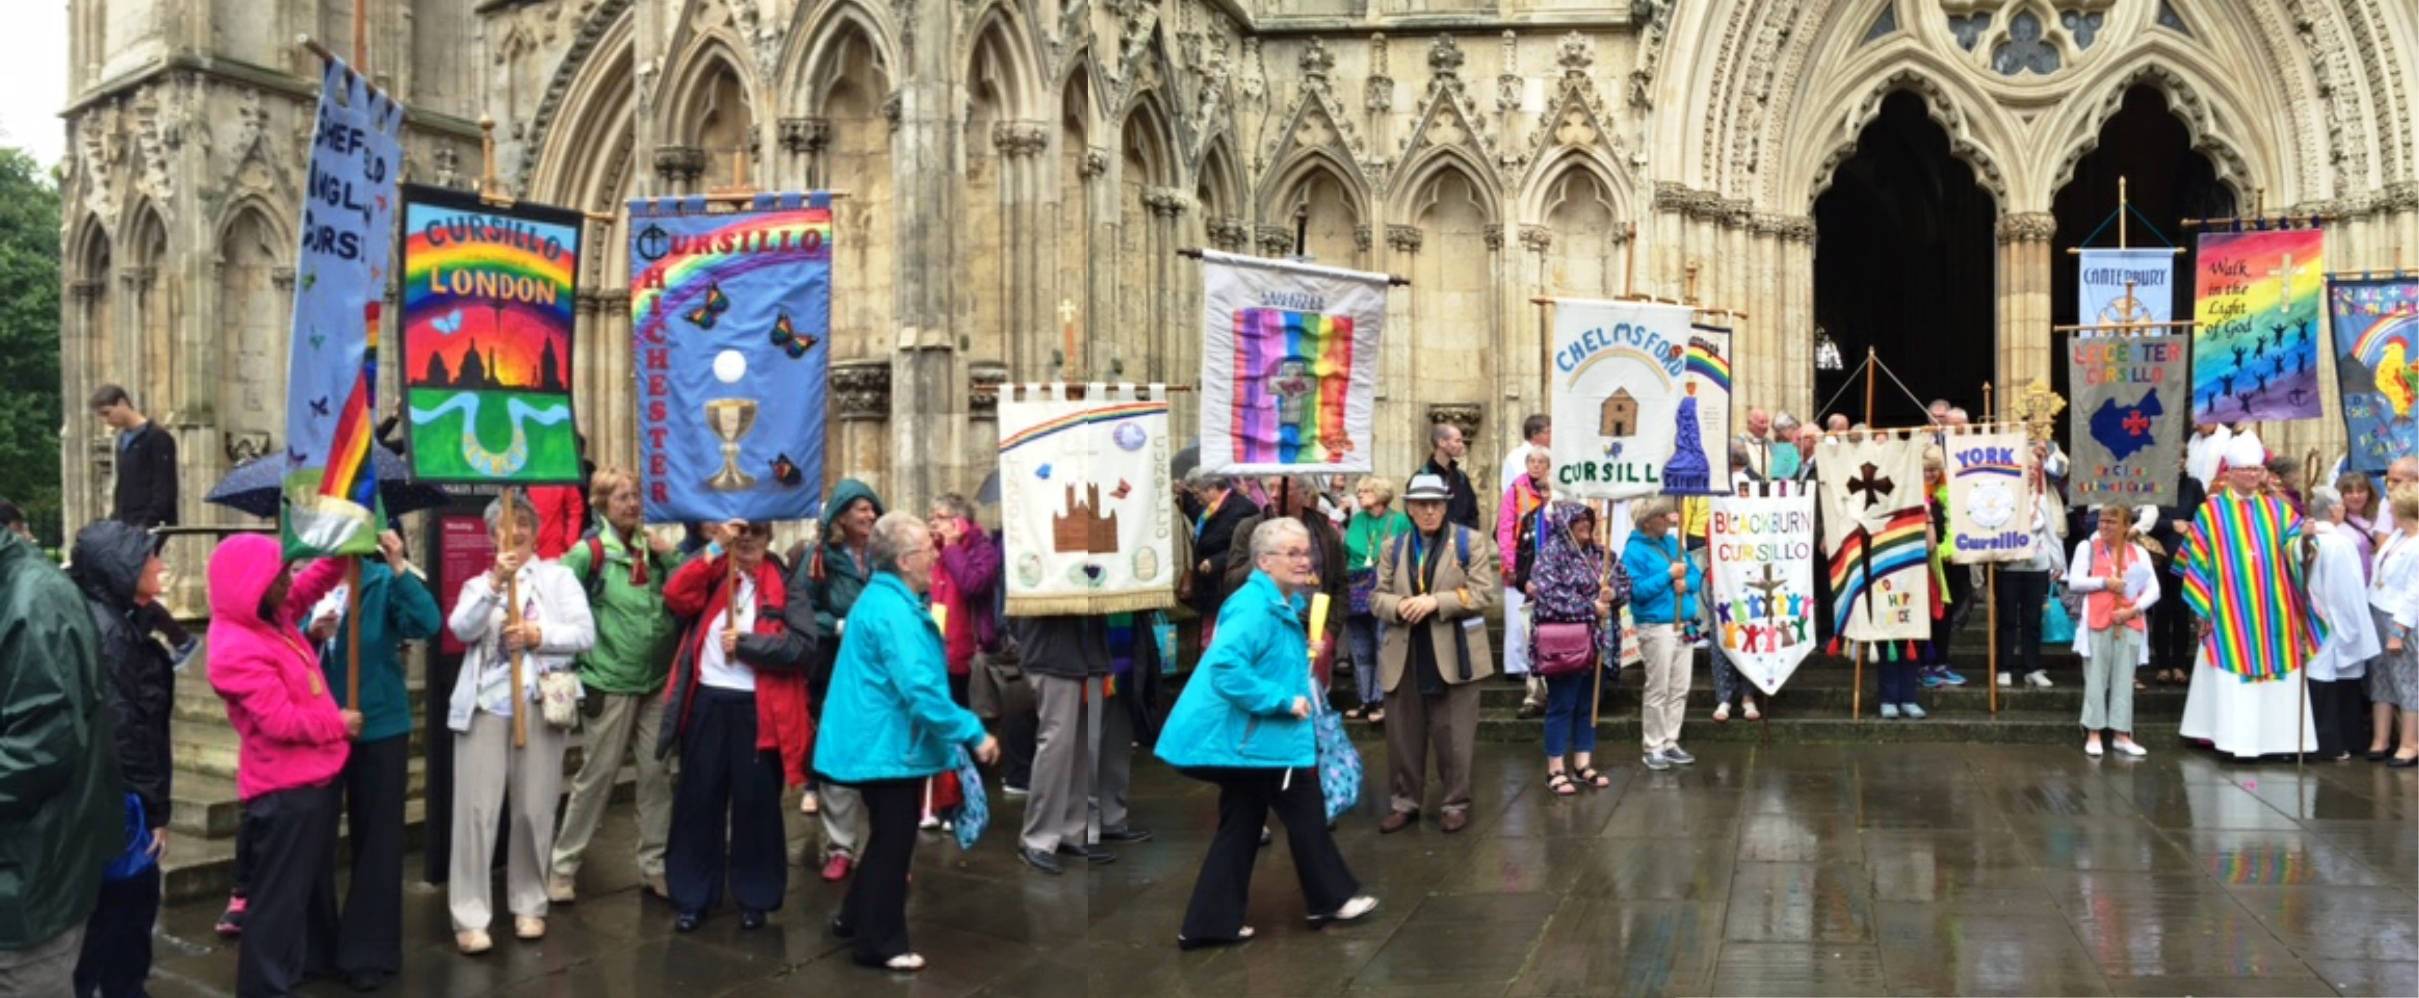 nat-ultreya-2016-banners-at-york-minster-12